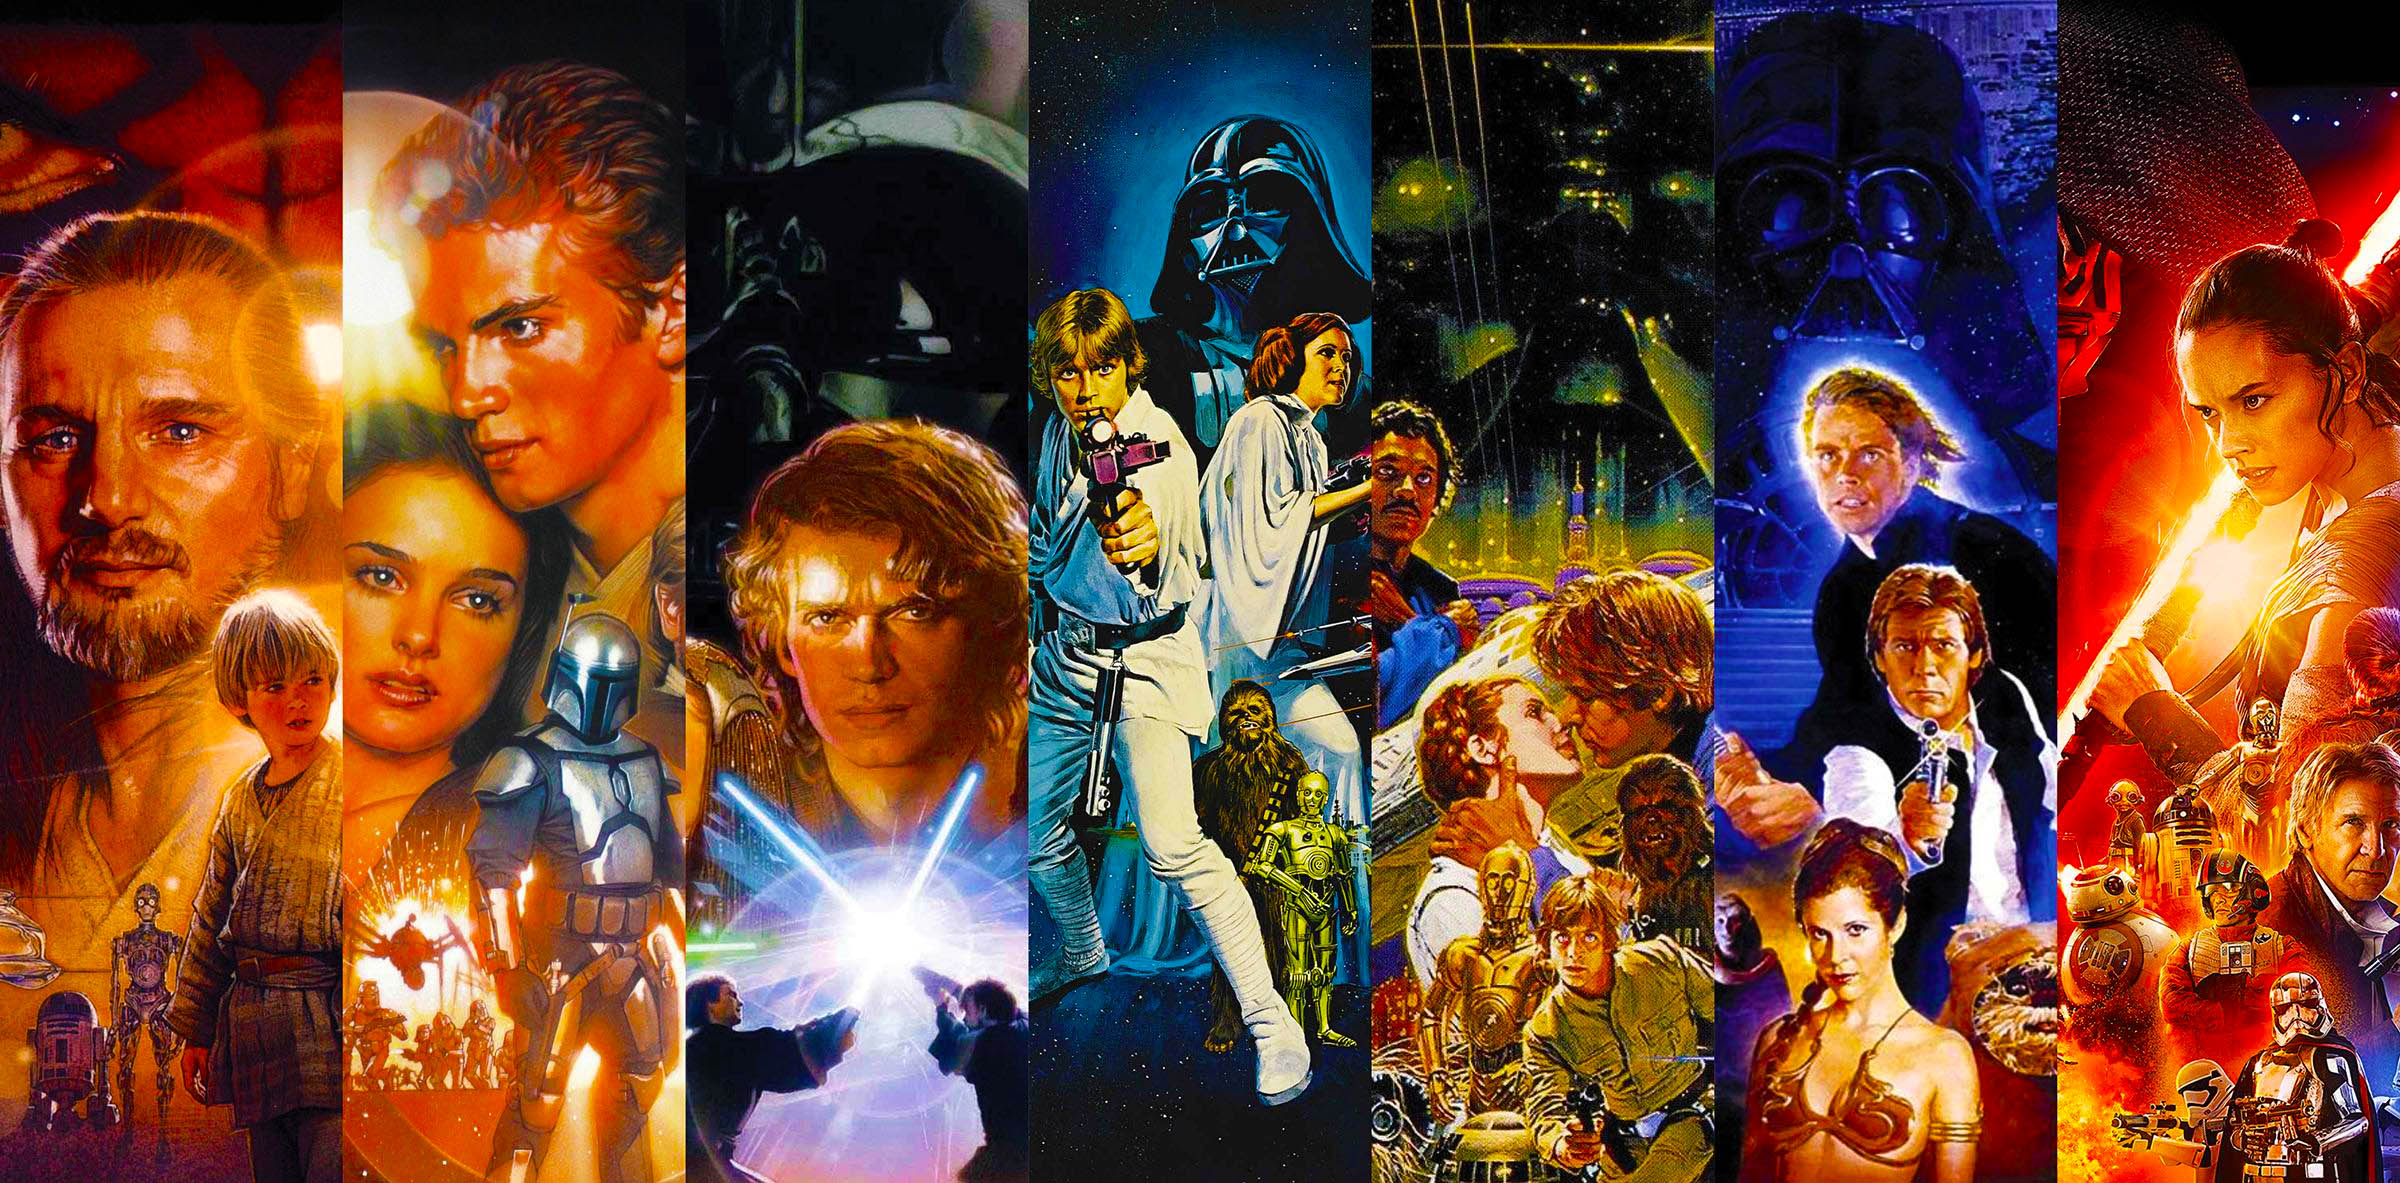 The 9 Star Wars Films Ranked